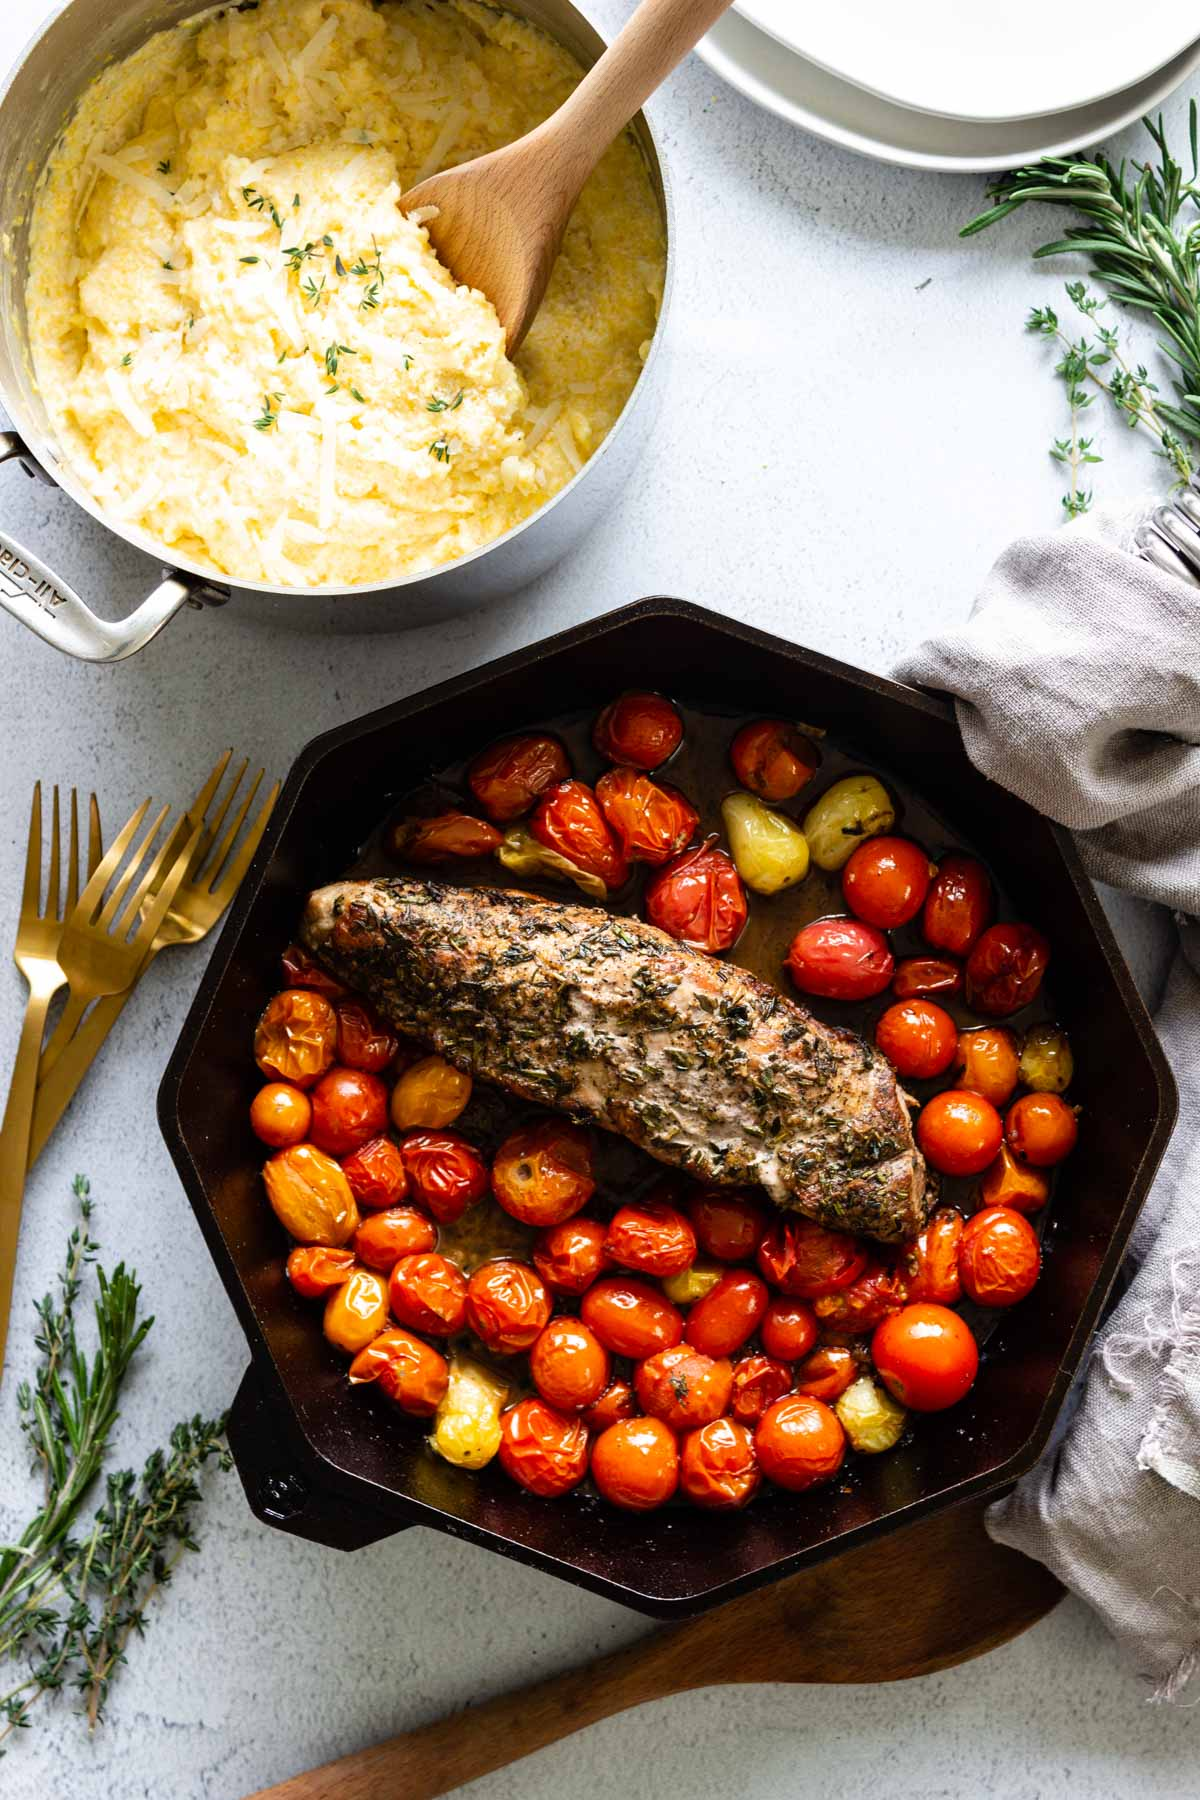 A cast iron skillet with herb-crusted pork tenderloin, garlic roasted cherry tomatoes, and a pot of creamy polenta nearby.